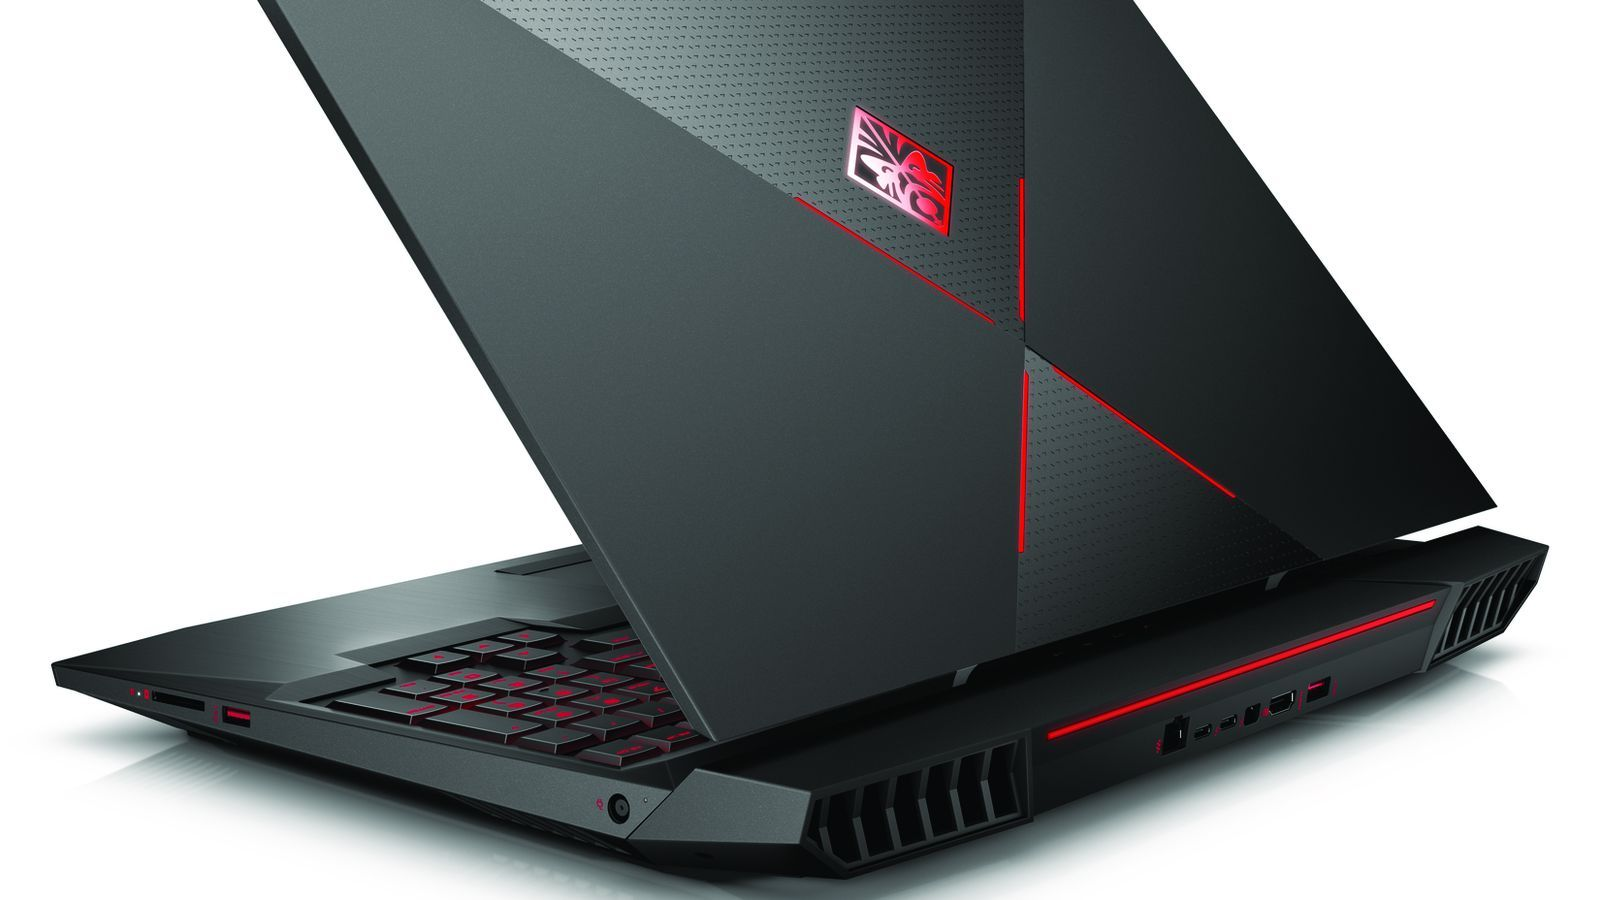 HP's first Omen X gaming laptop includes easy access to upgrade parts